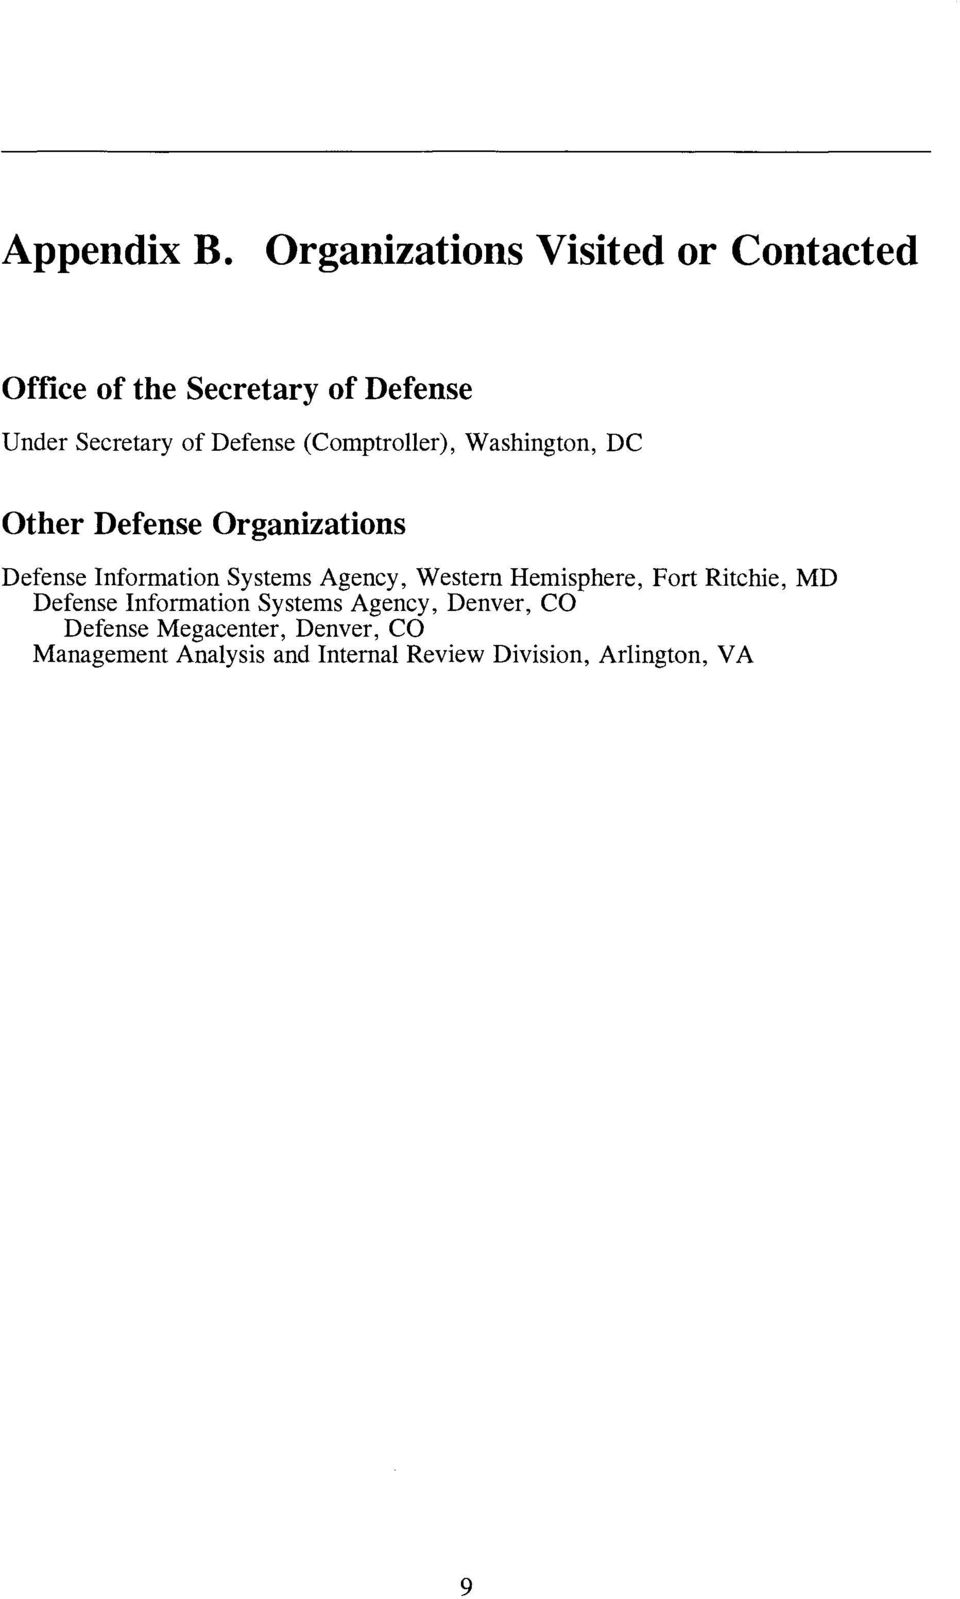 Defense (Comptroller), Washington, DC Other Defense Organizations Defense Information Systems